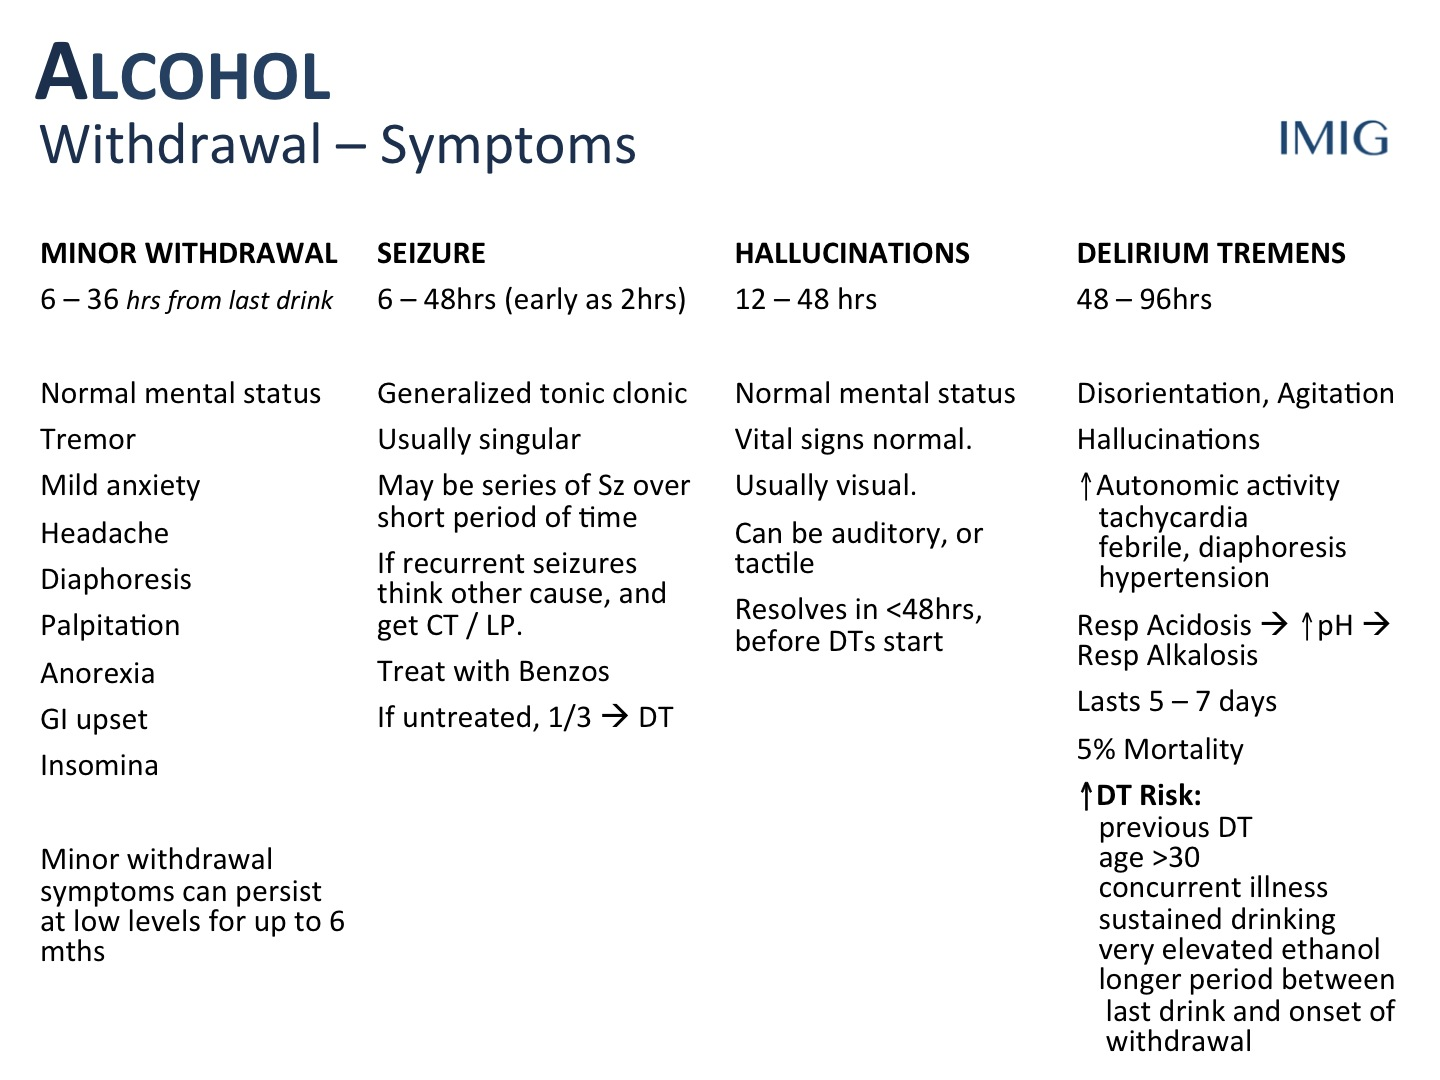 Alcohol Withdrawal Symptom Timeline